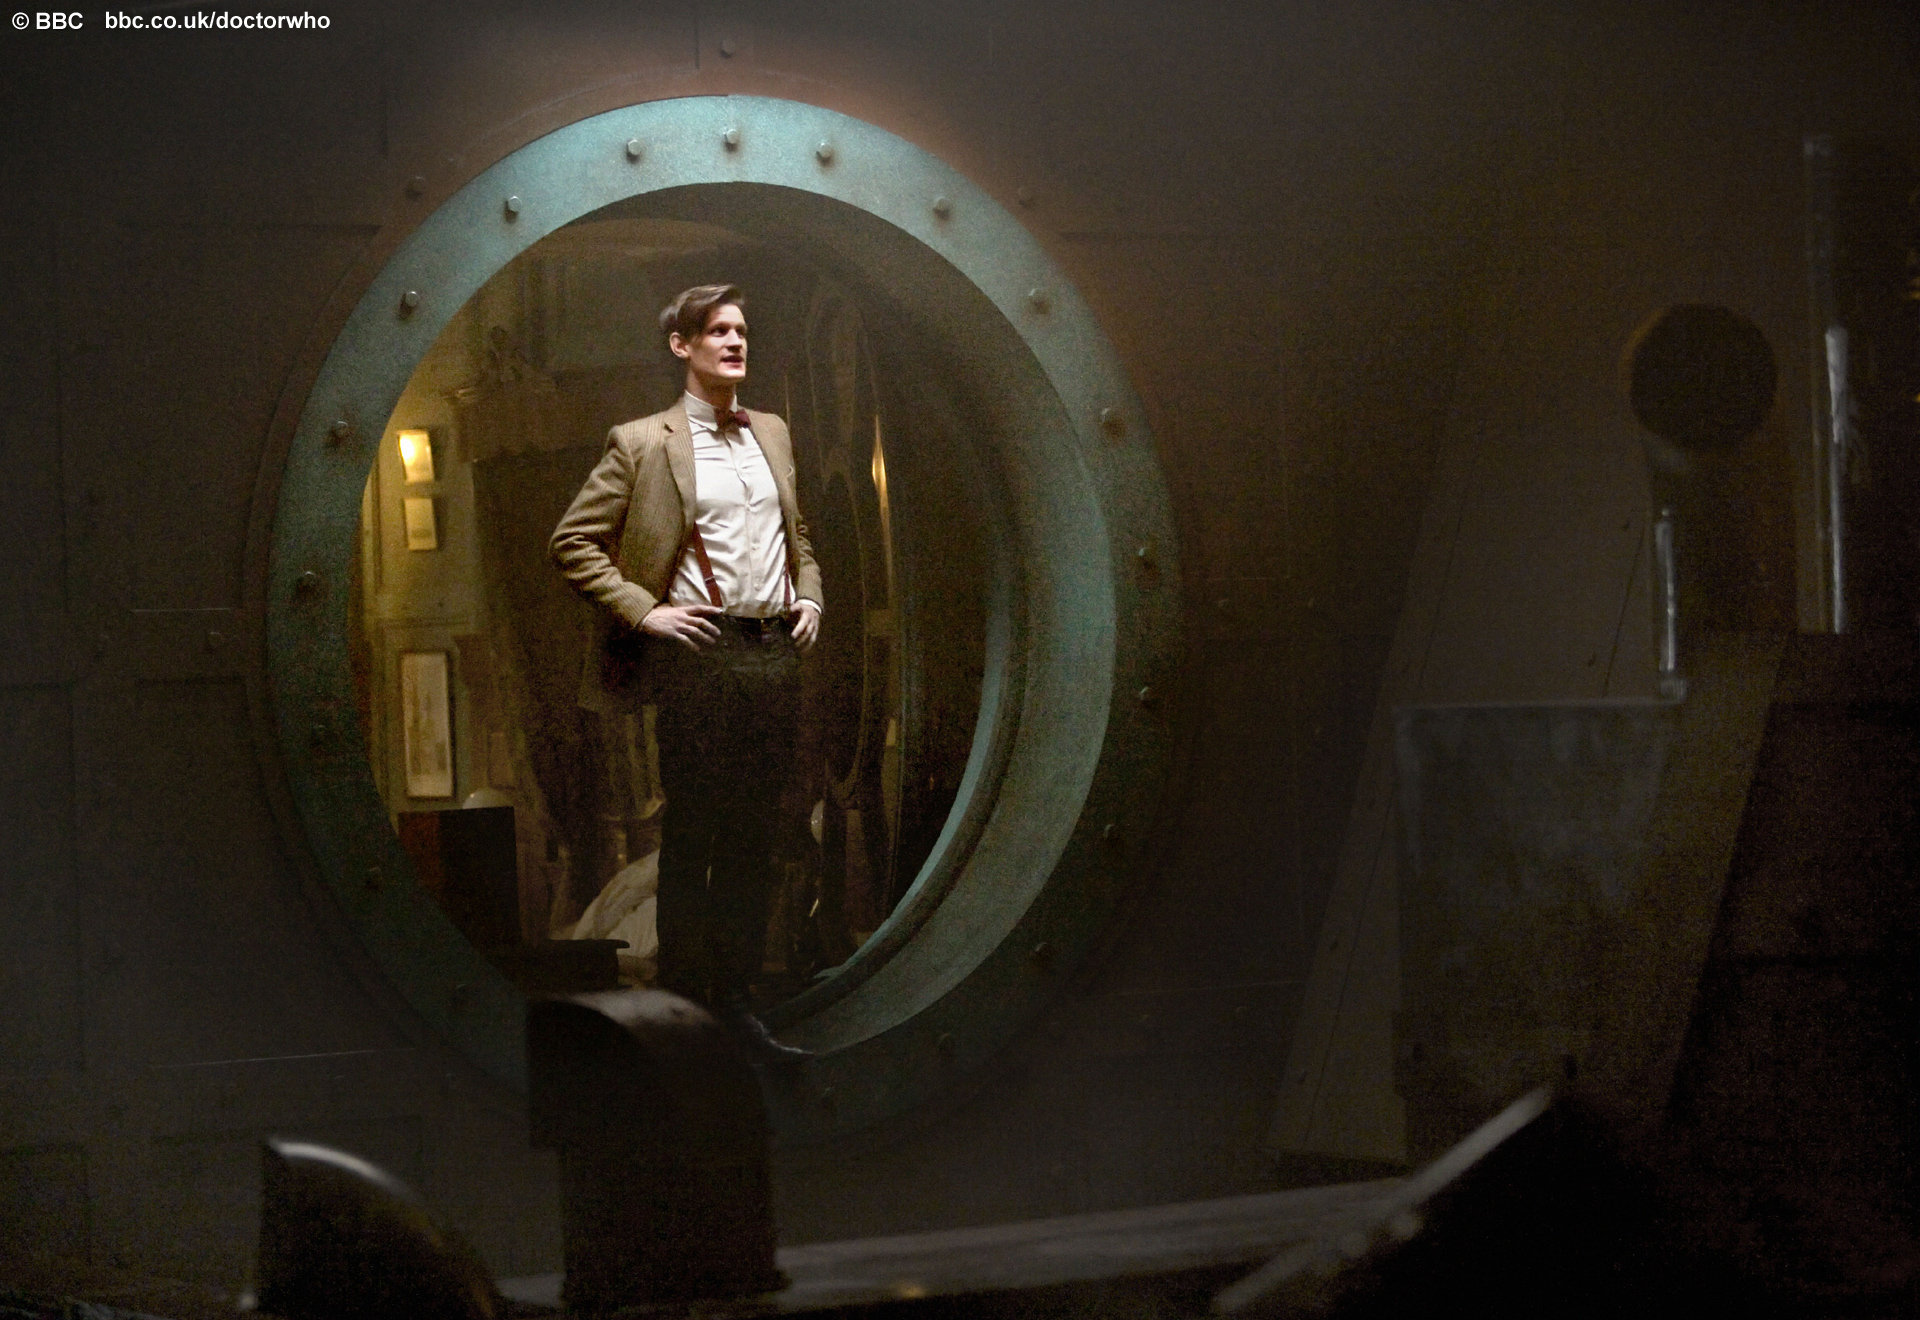 http://static.bbc.co.uk/images/ic/qe/crop/946x532/doctorwho/episodes/d11/s01/e14/wallpapers/d11s01e14_wallpaper_02.jpg